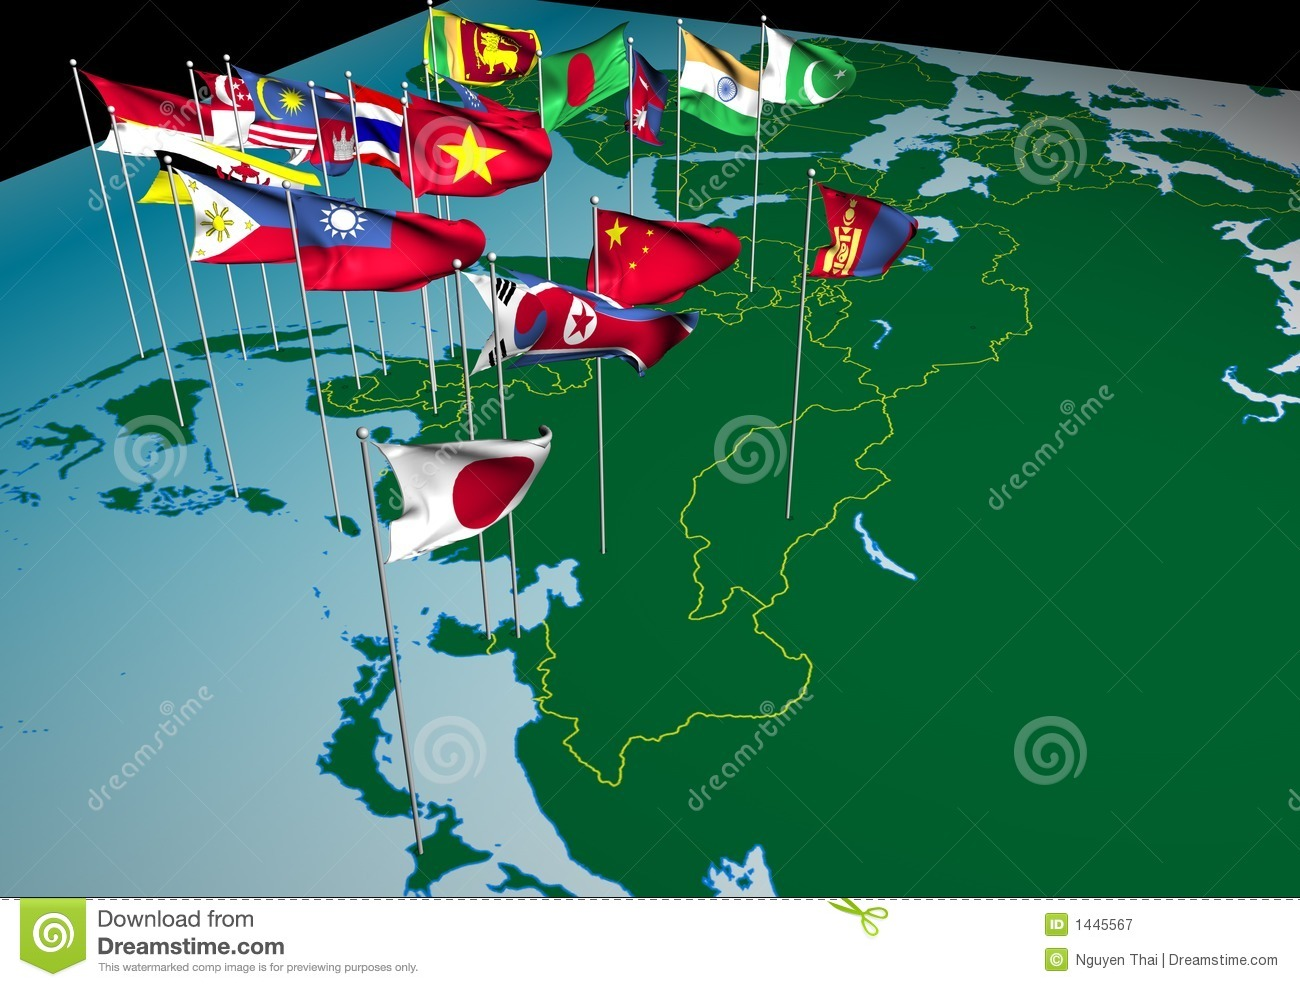 Bangladesh Map Stock Photos, Images, & Pictures.